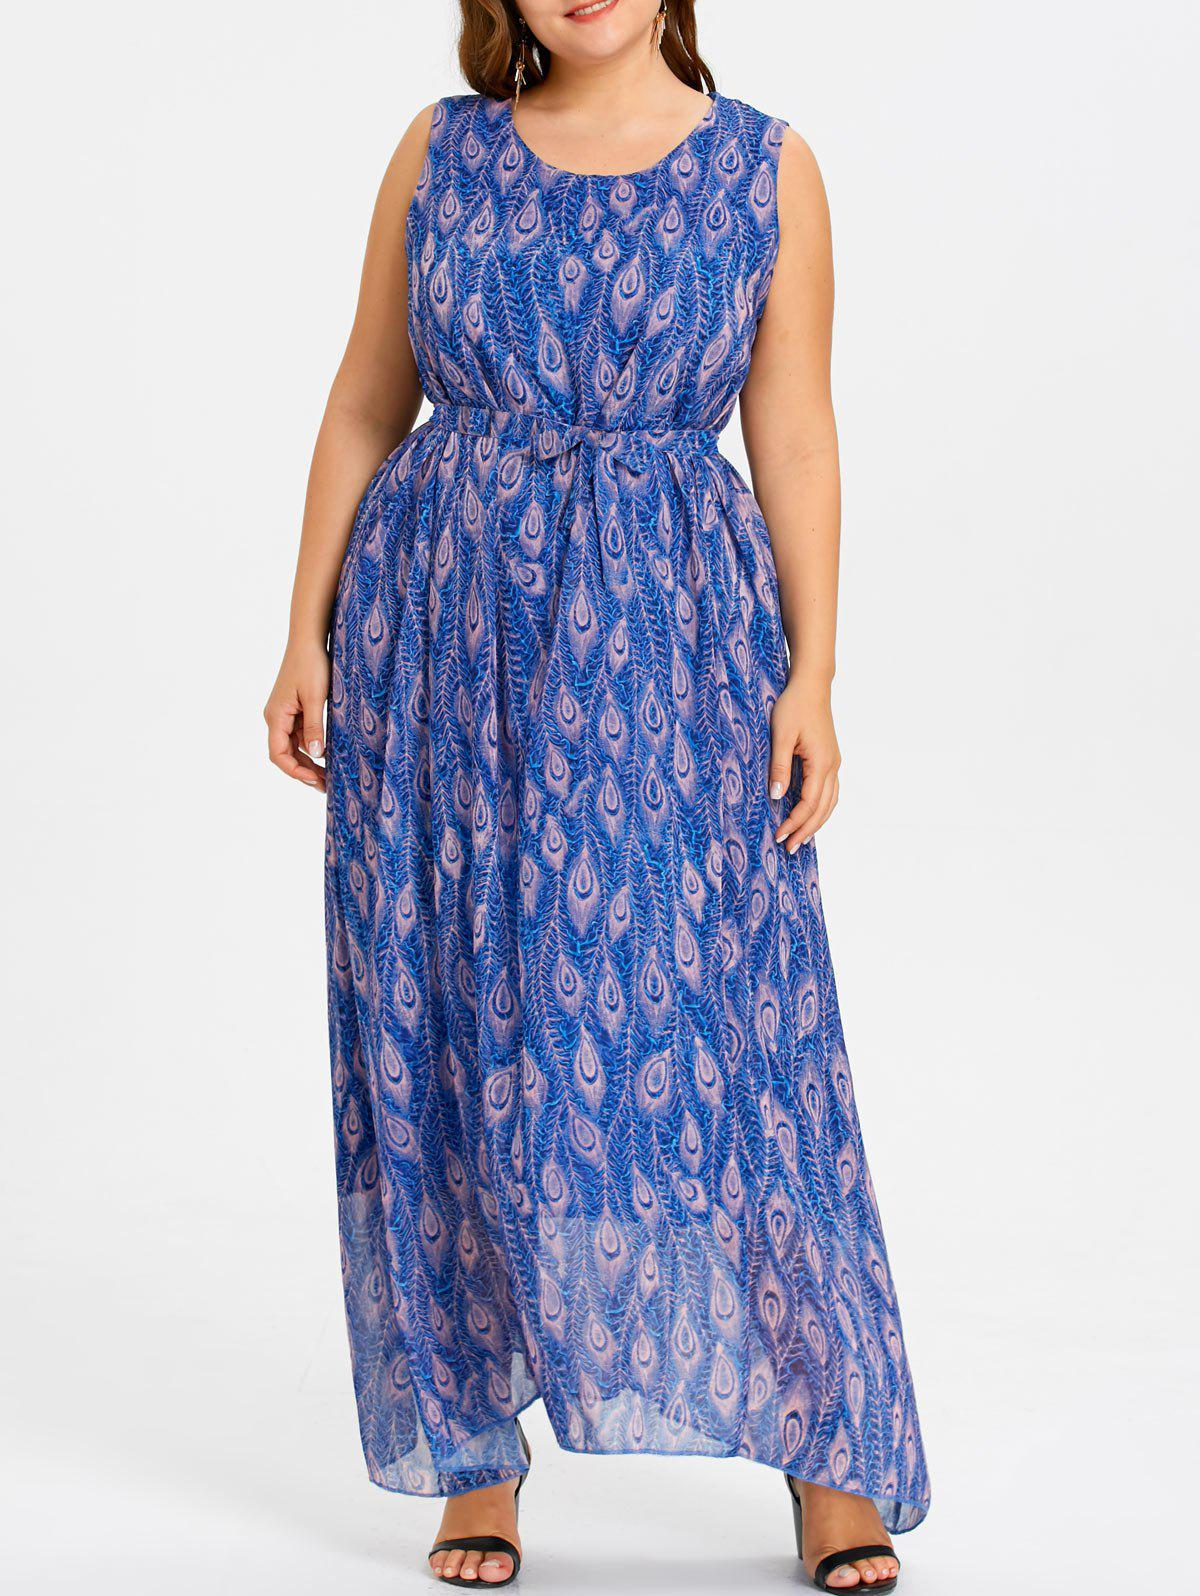 Peacock Plus Size Maxi Beach Dress - LARKSPUR 3XL